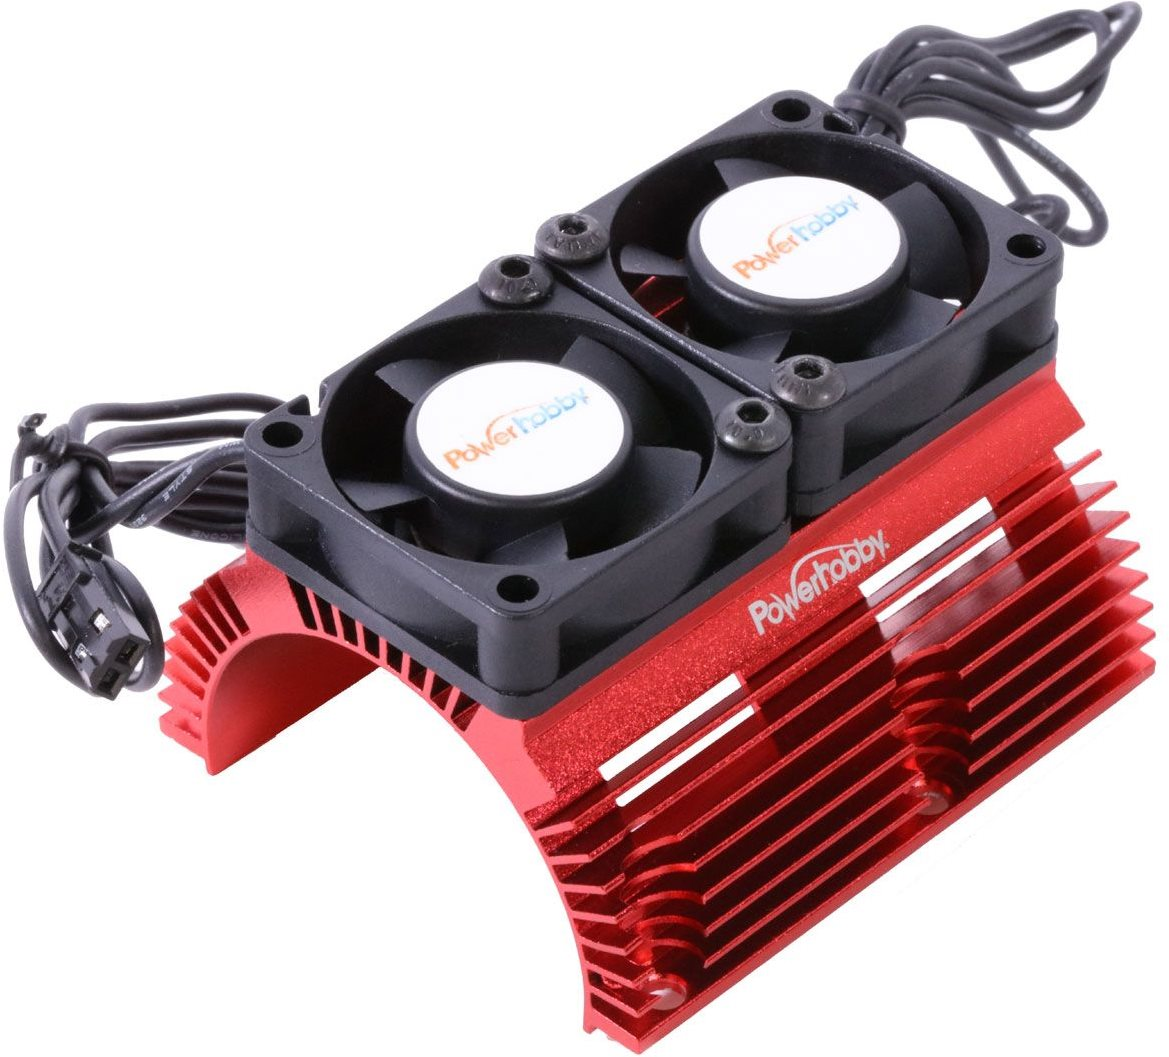 Power Hobby  Heat Sink W/ Twin Tornado High Speed Fans, For 1/8 Motors, Red